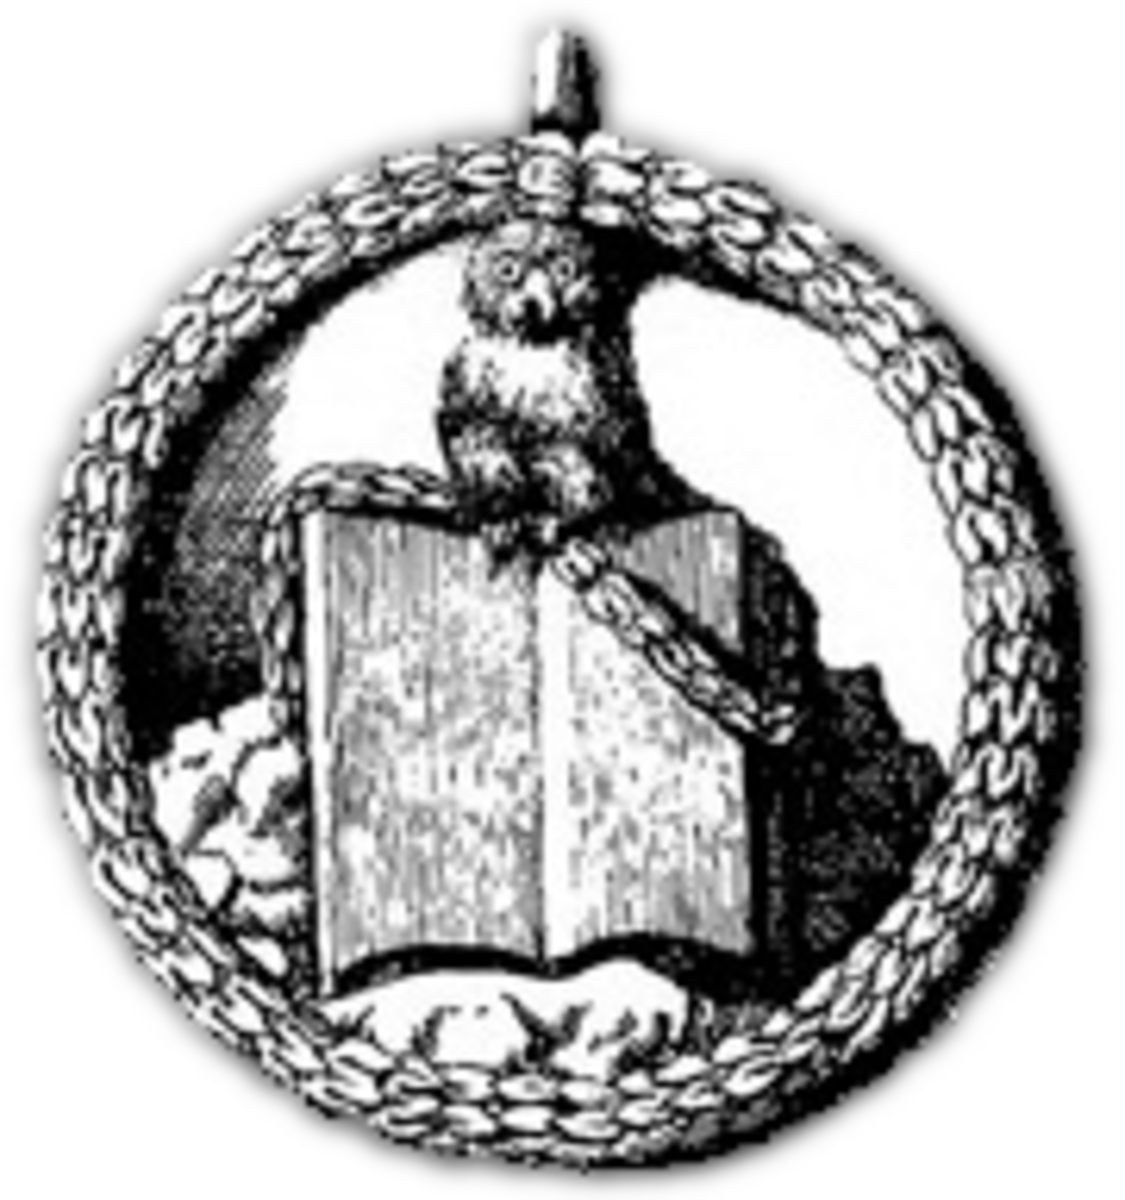 This is believed to be the original emblem of the Bavarian Illuminati. The Owl Of Minerva is conspicuously placed at the top of the emblem.